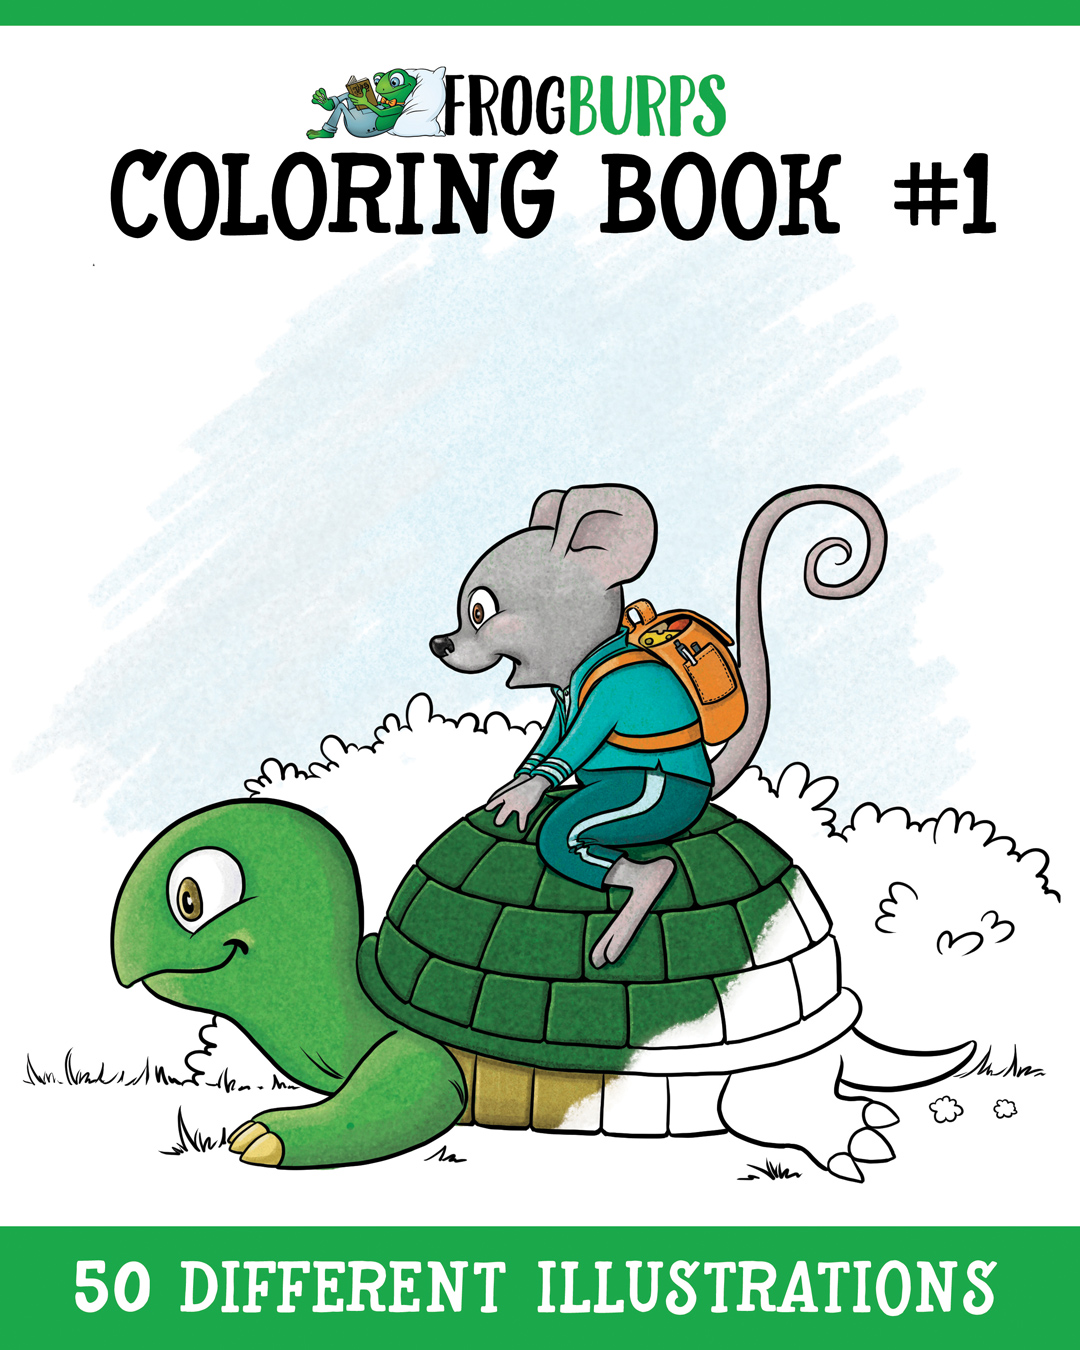 Buy our first coloring book